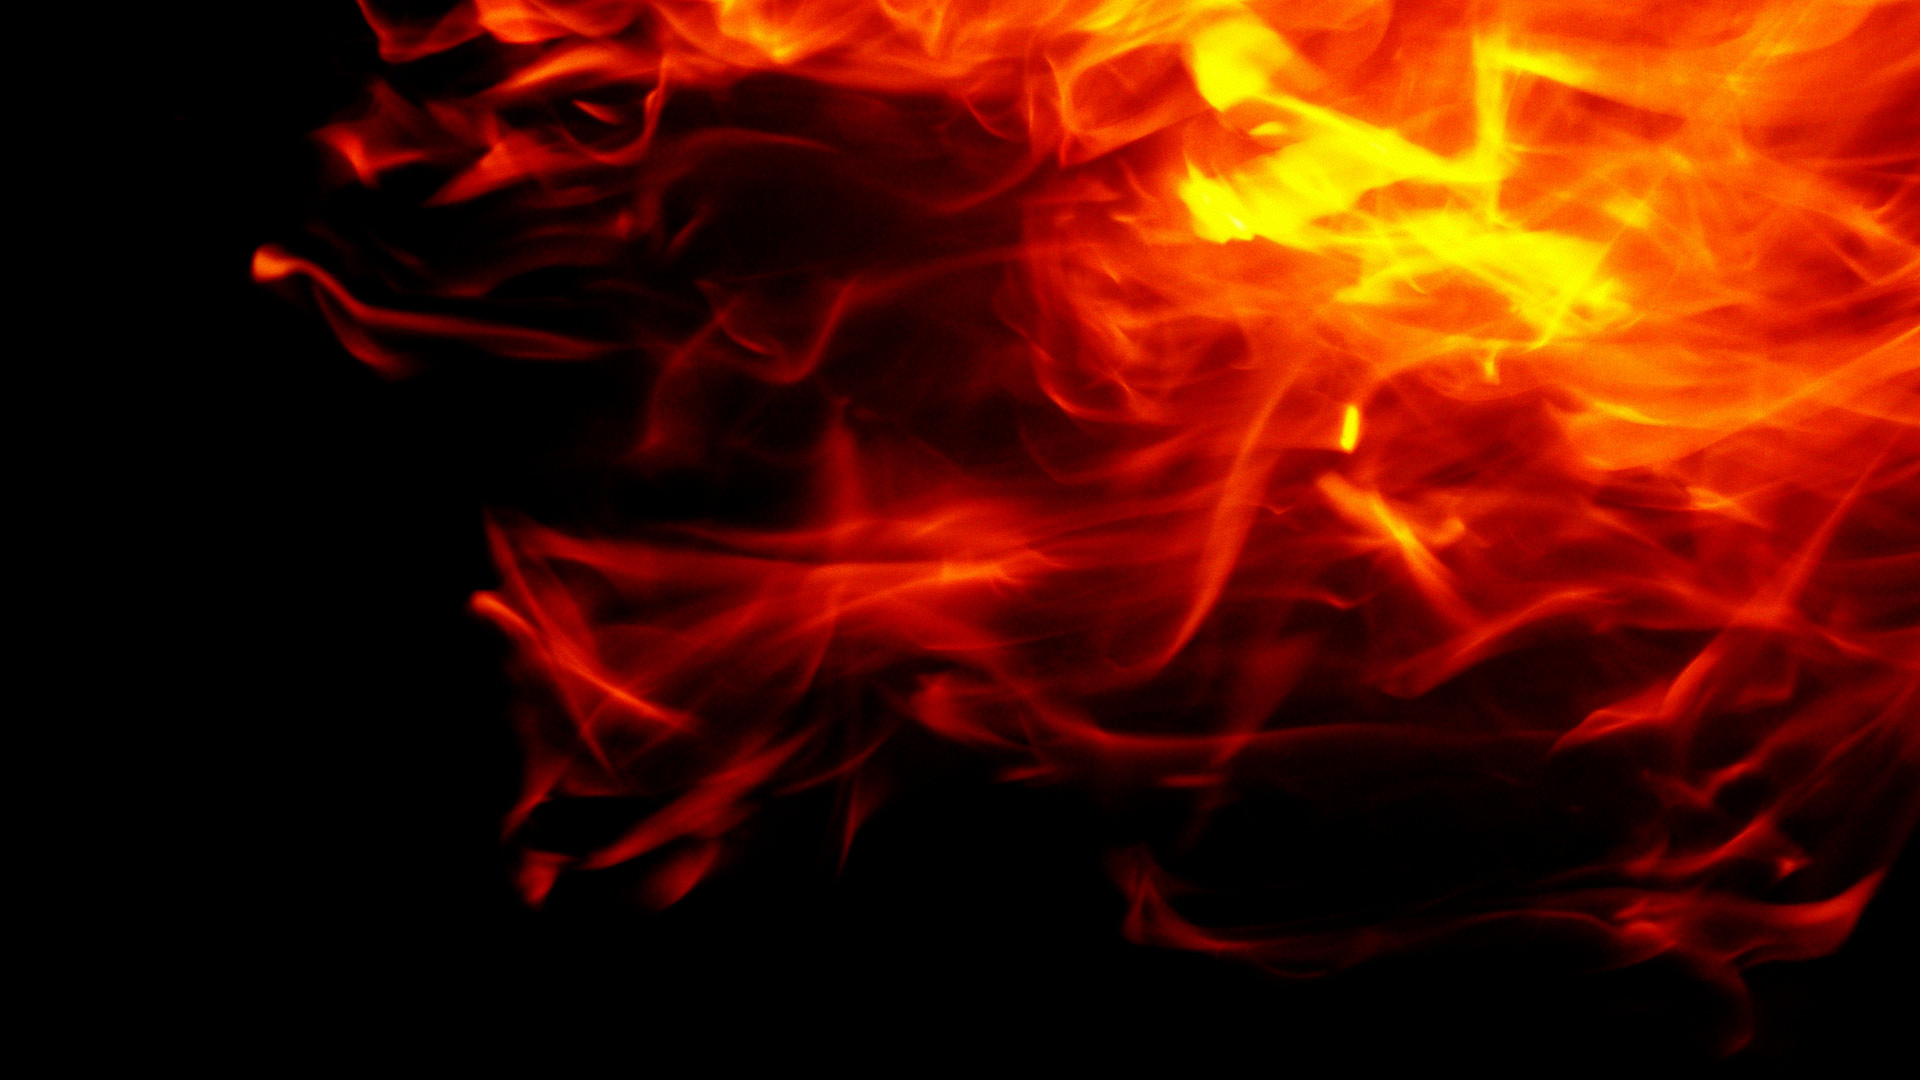 red flame wallpaper 50